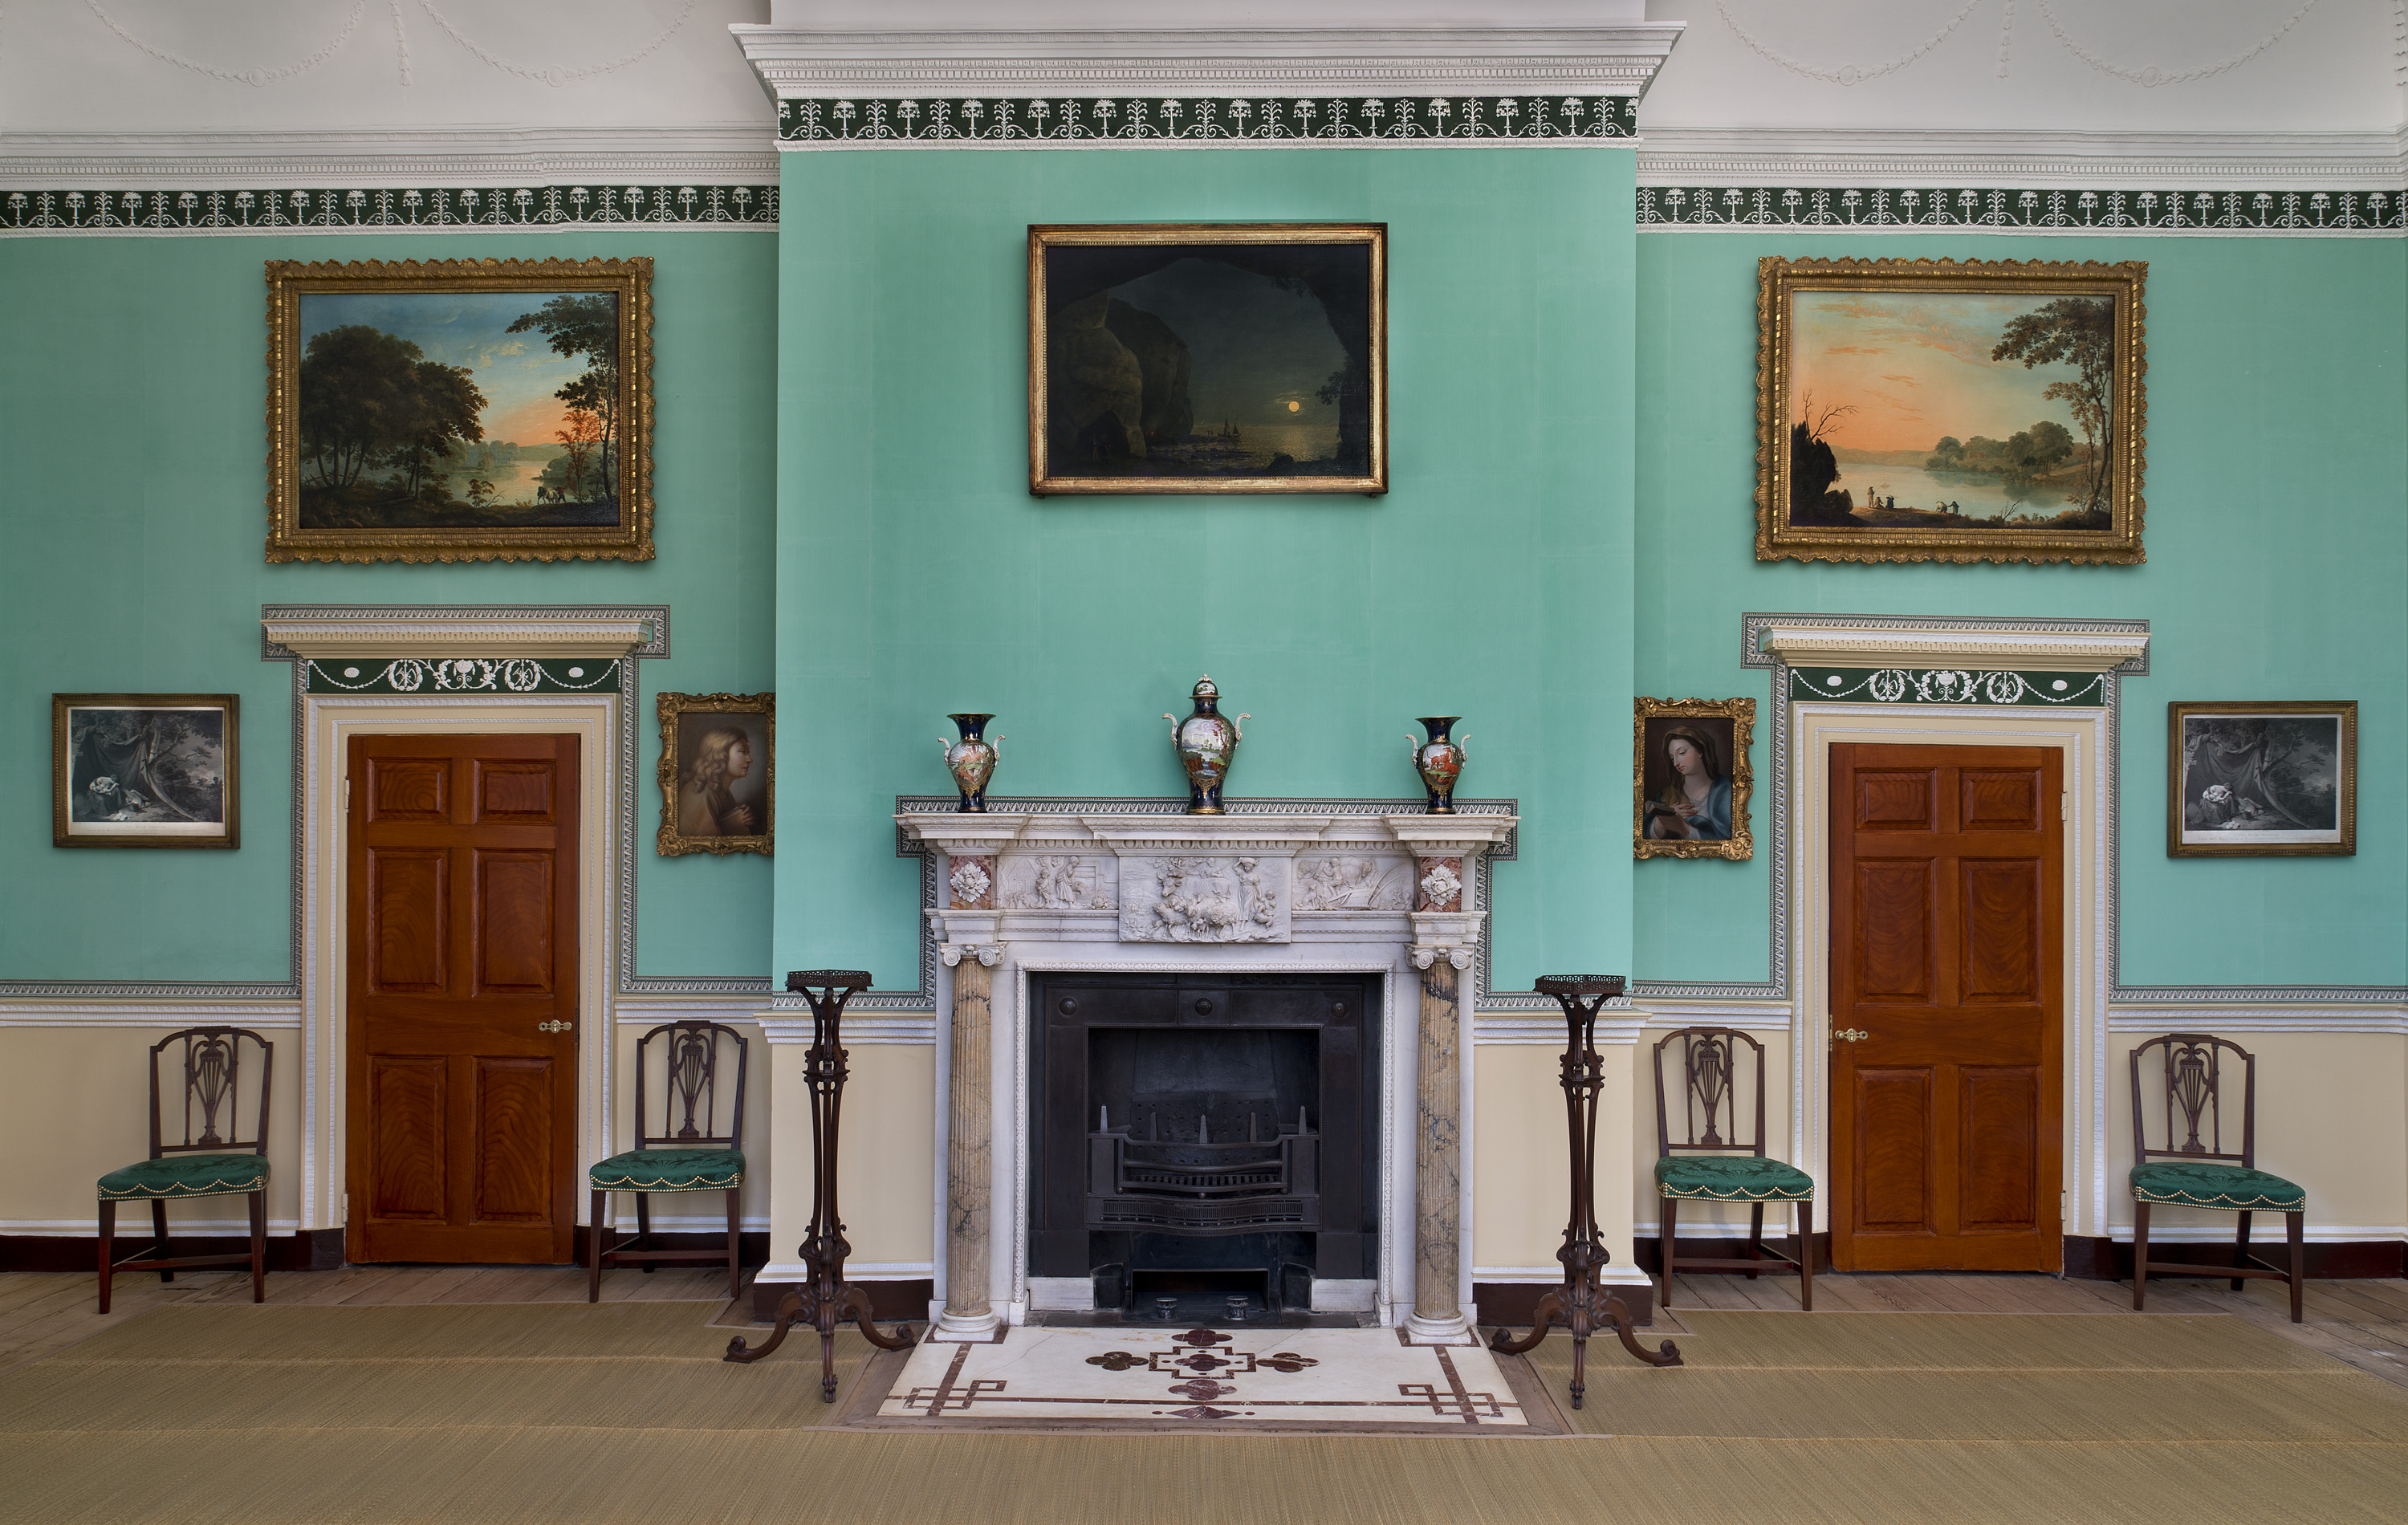 See the New Room in the Mansion on your tour (Gavin Ashworth)